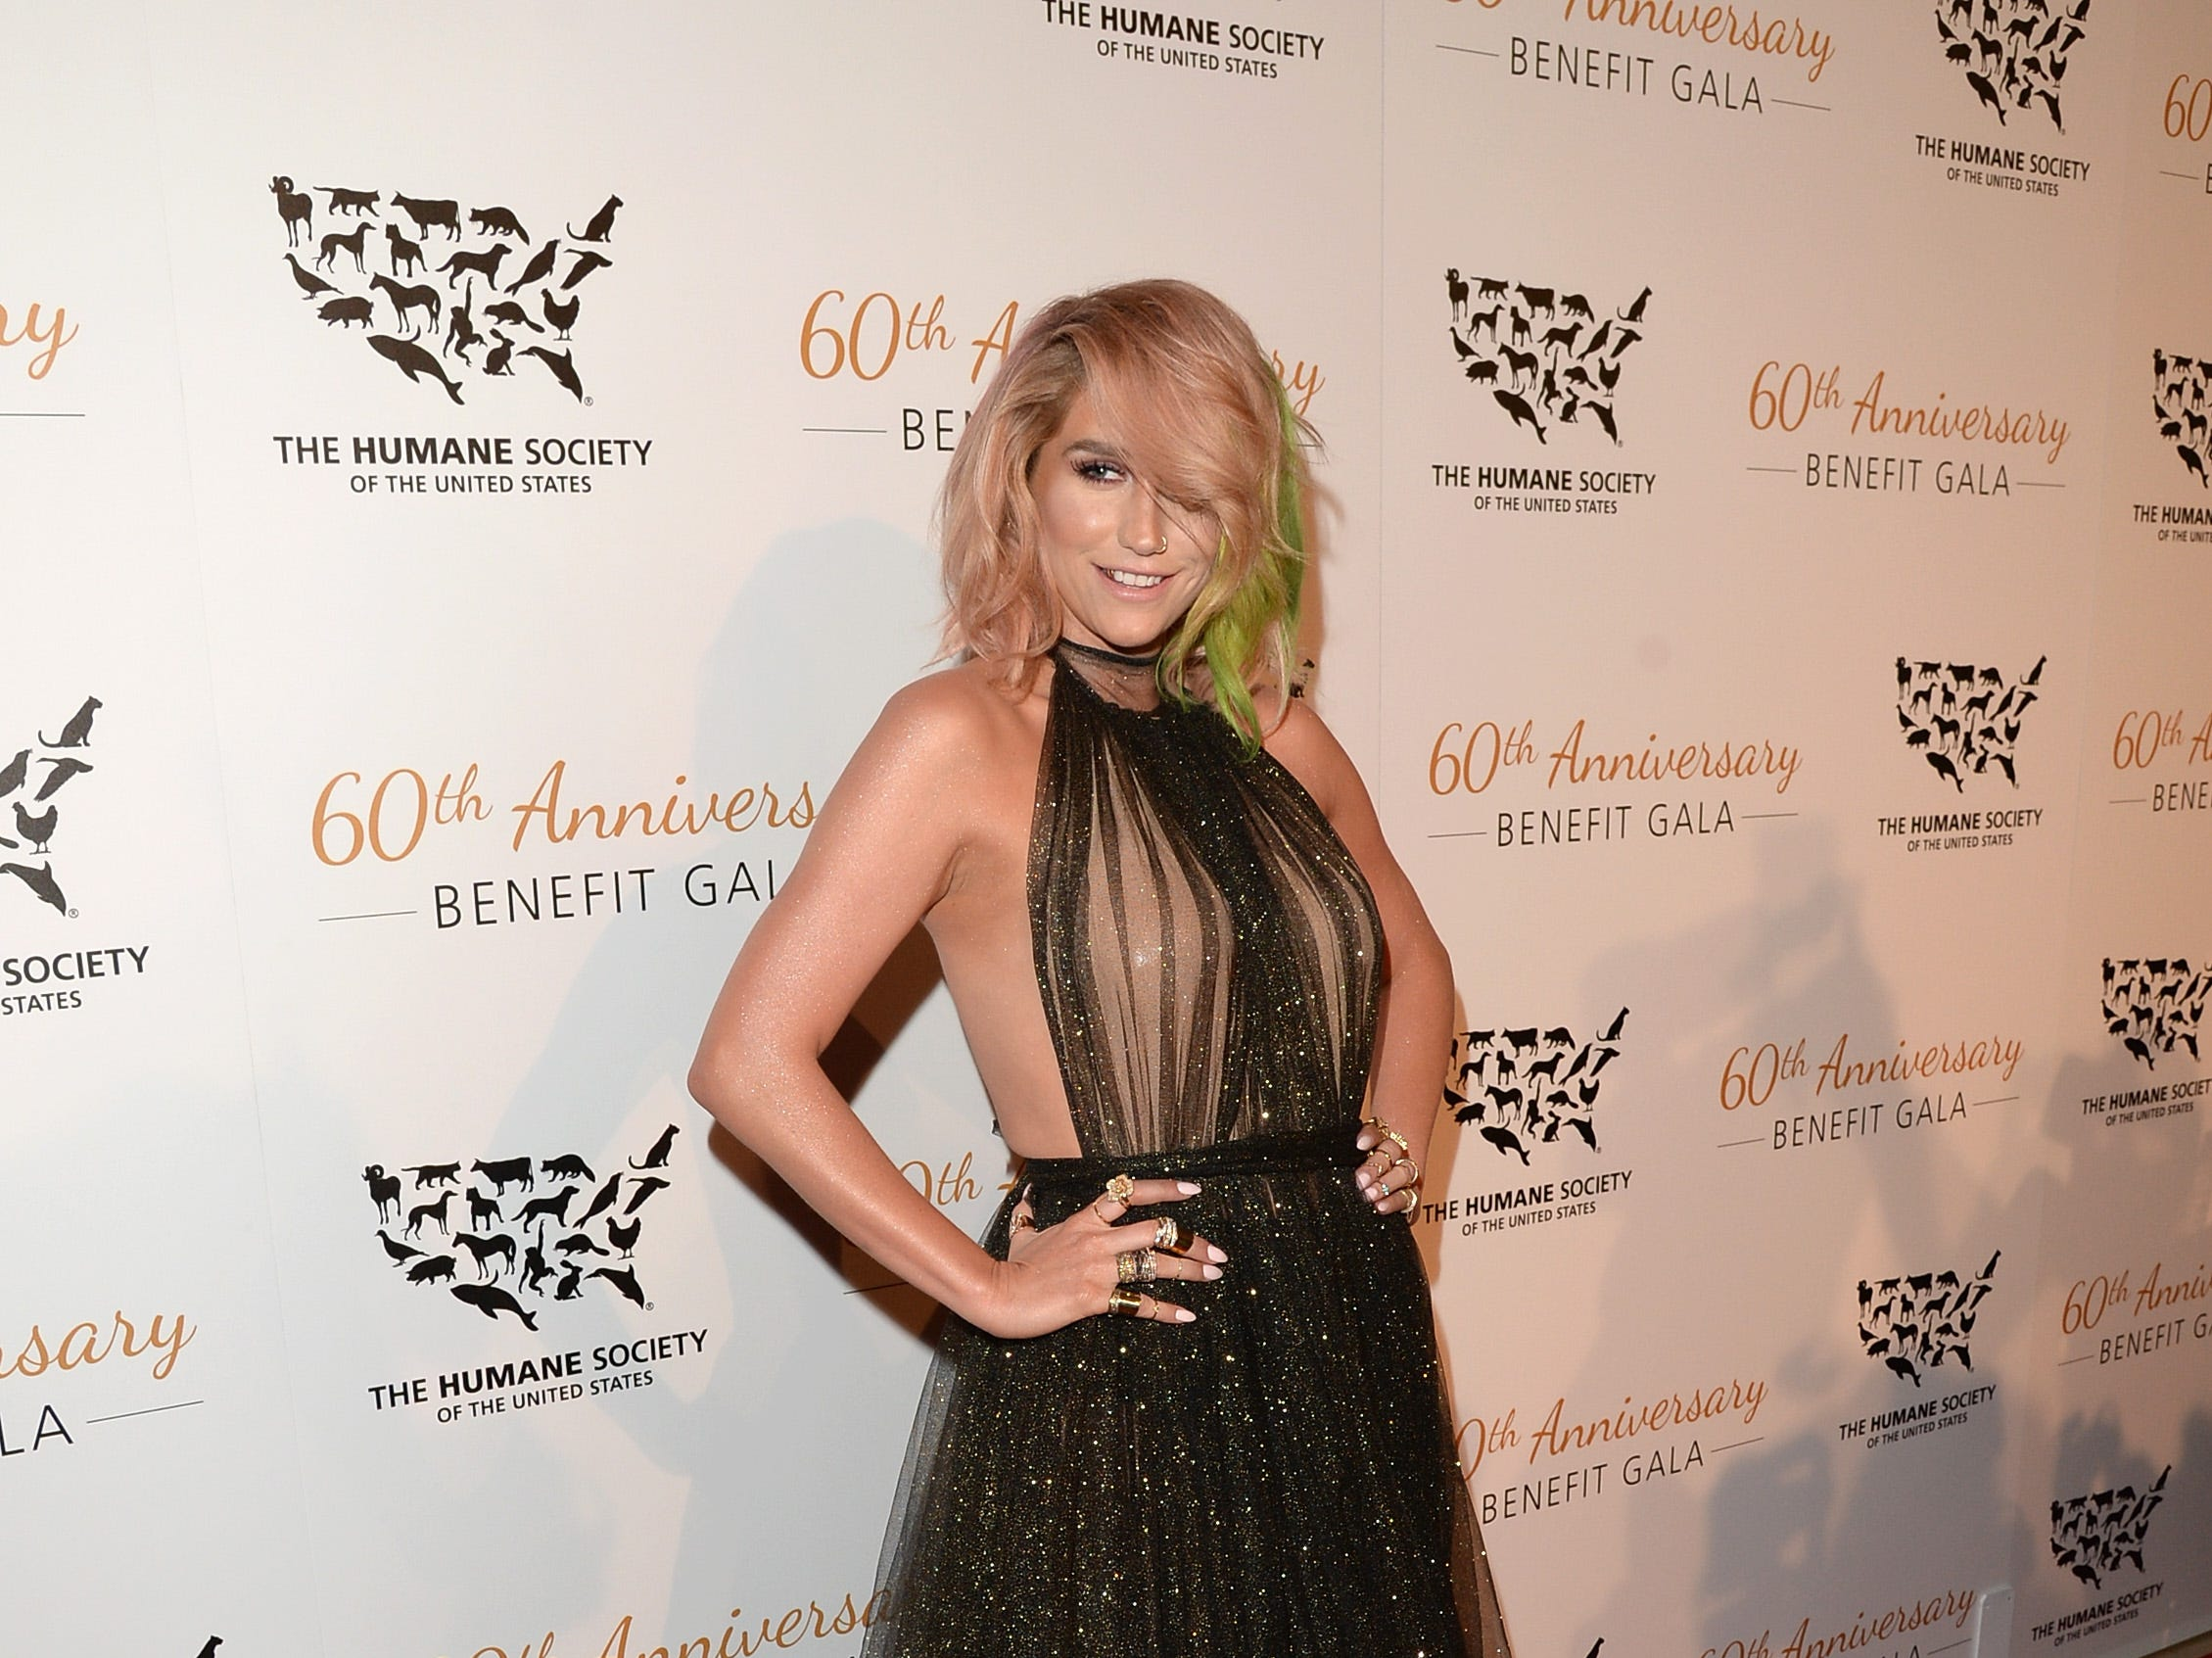 Kesha attends the Humane Society of The United States 60th Anniversary Gala at The Beverly Hilton Hotel on March 29, 2014 in Beverly Hills, California.